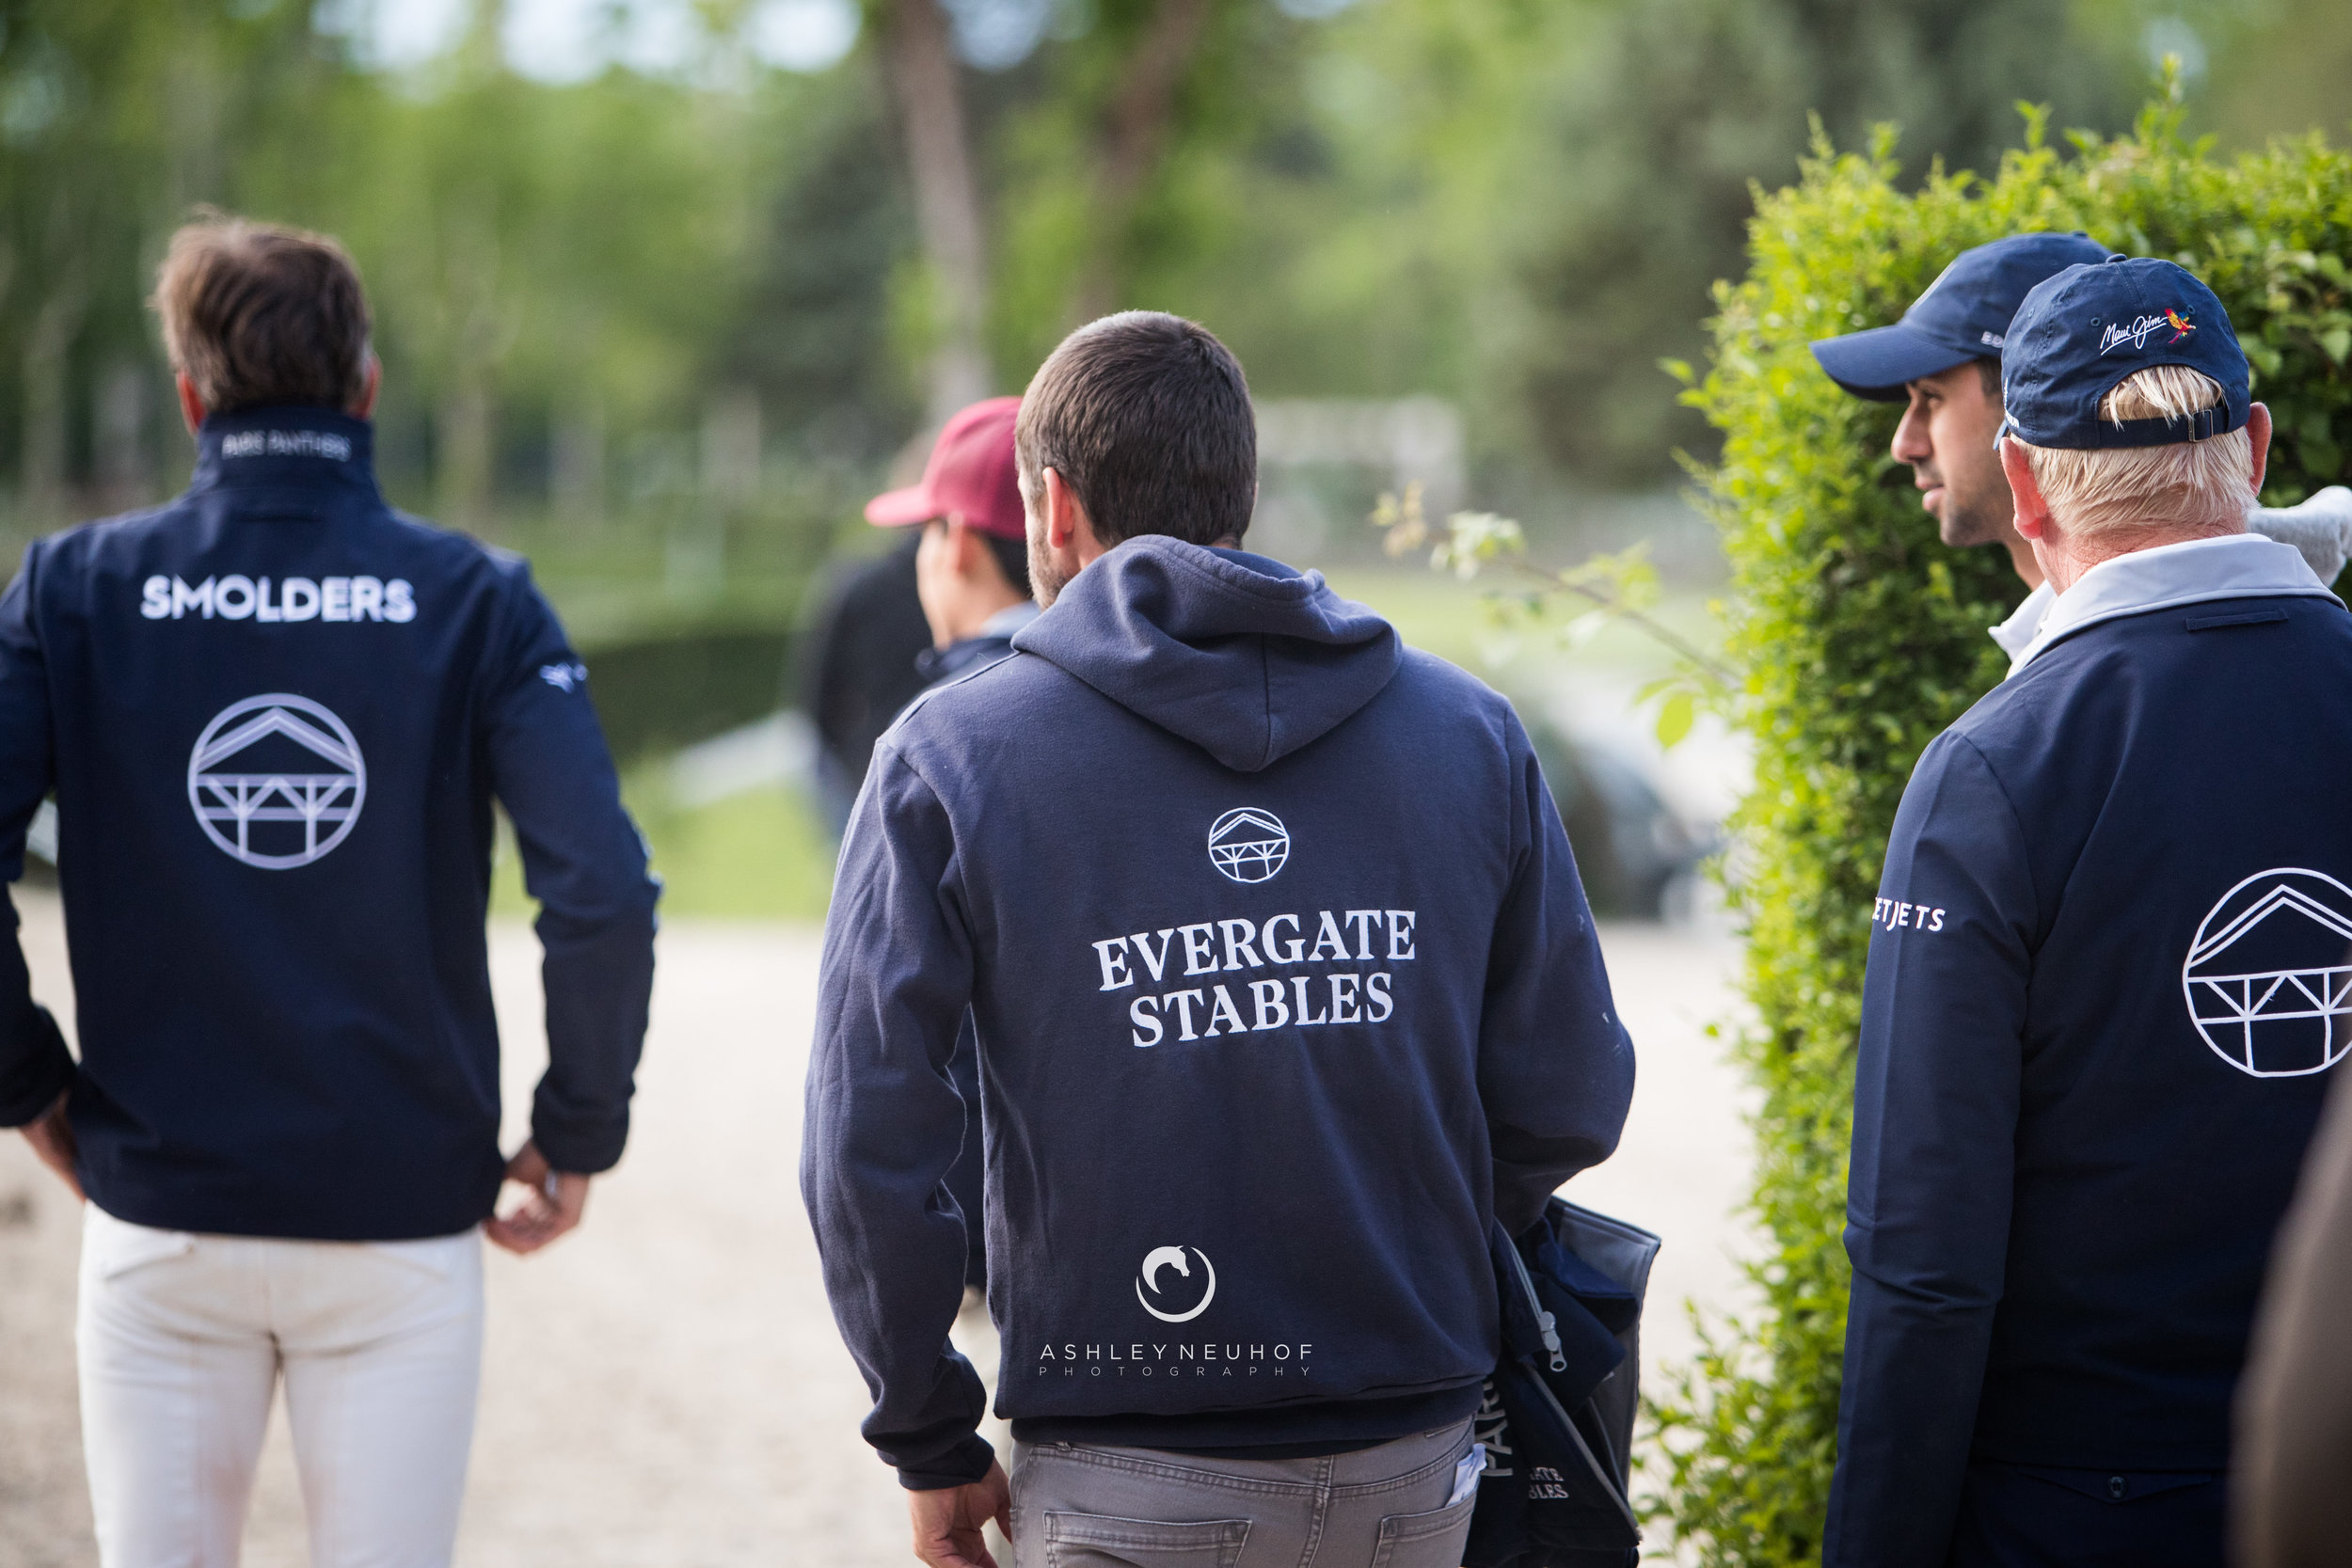 Team Evergate Stables Team at Longines Global Champions Tour of Madrid 2019. Photo by Ashley Neuhof Photography.